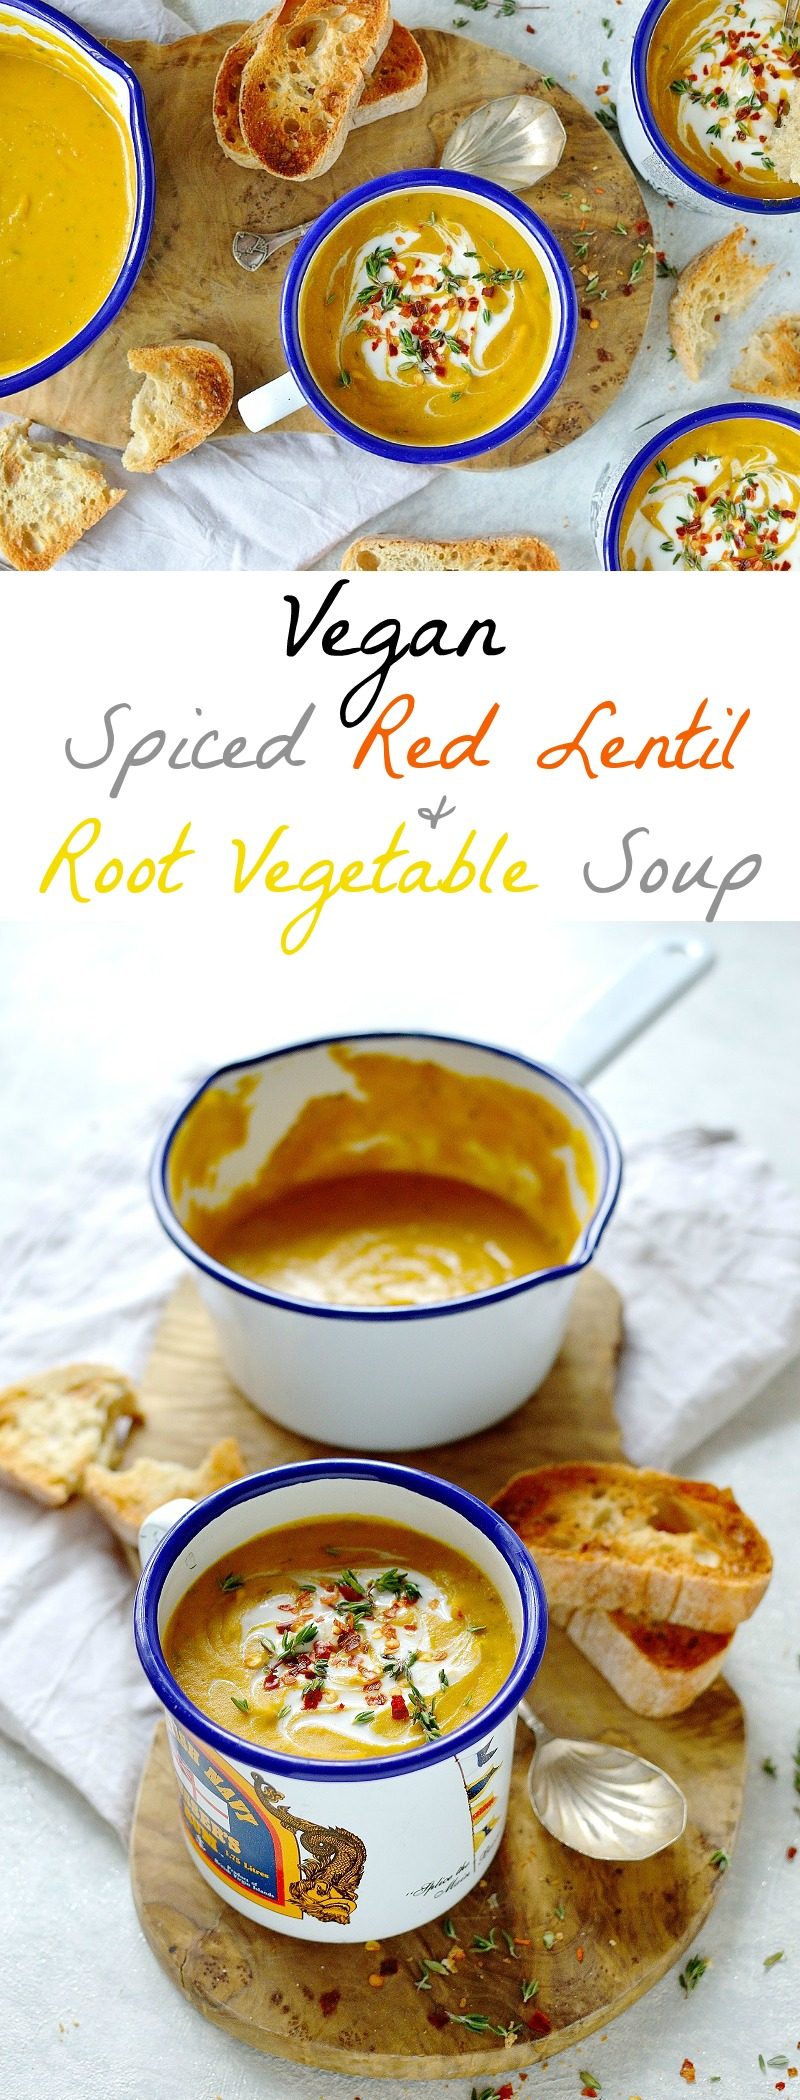 Vegan spiced red lentil and root vegetable soup pinterest